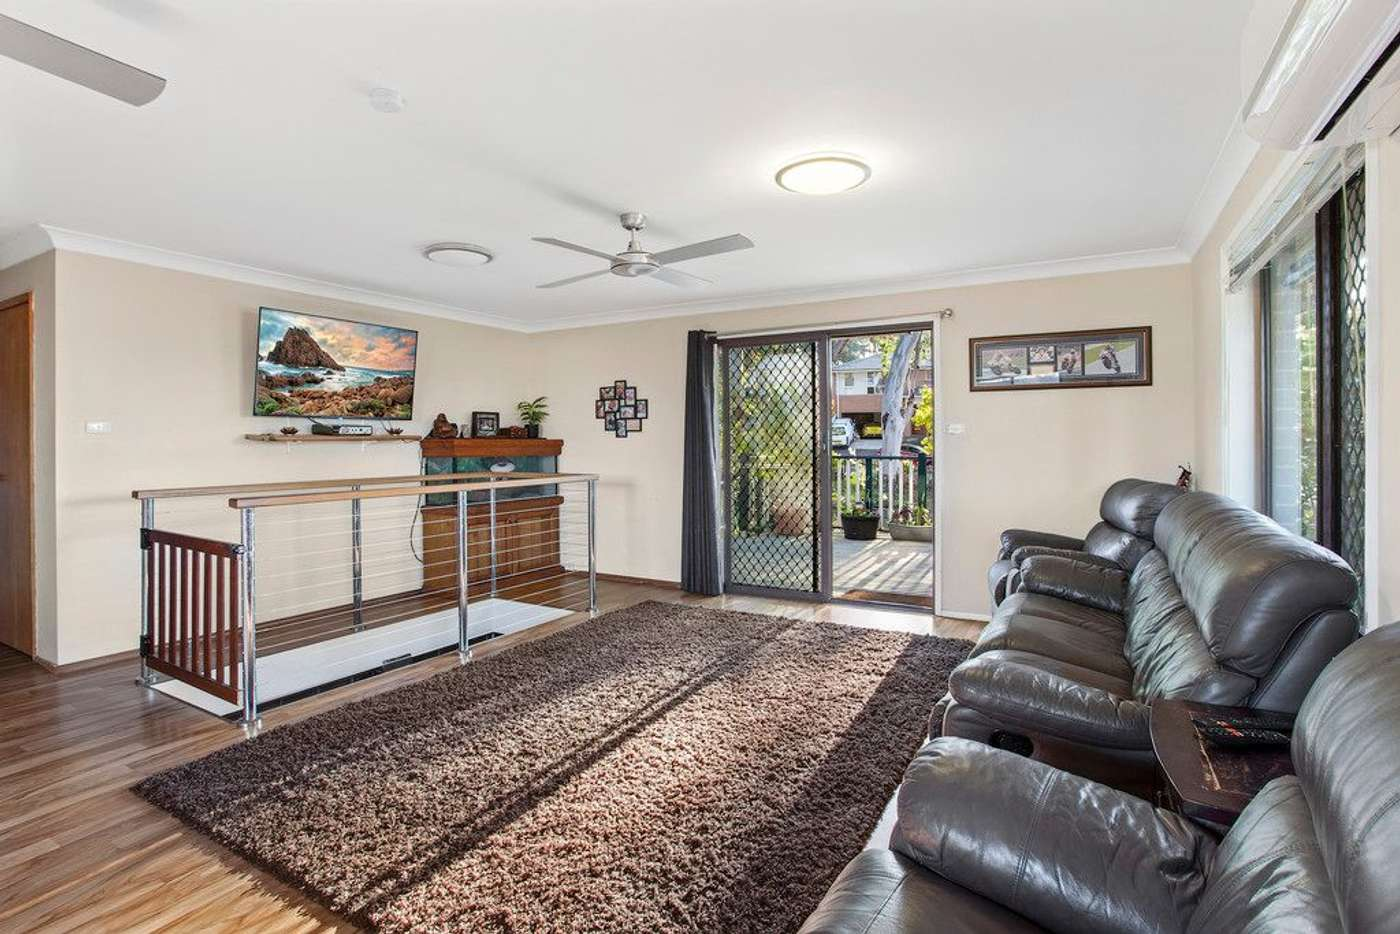 Fifth view of Homely house listing, 25 The Glen, Berkeley Vale NSW 2261